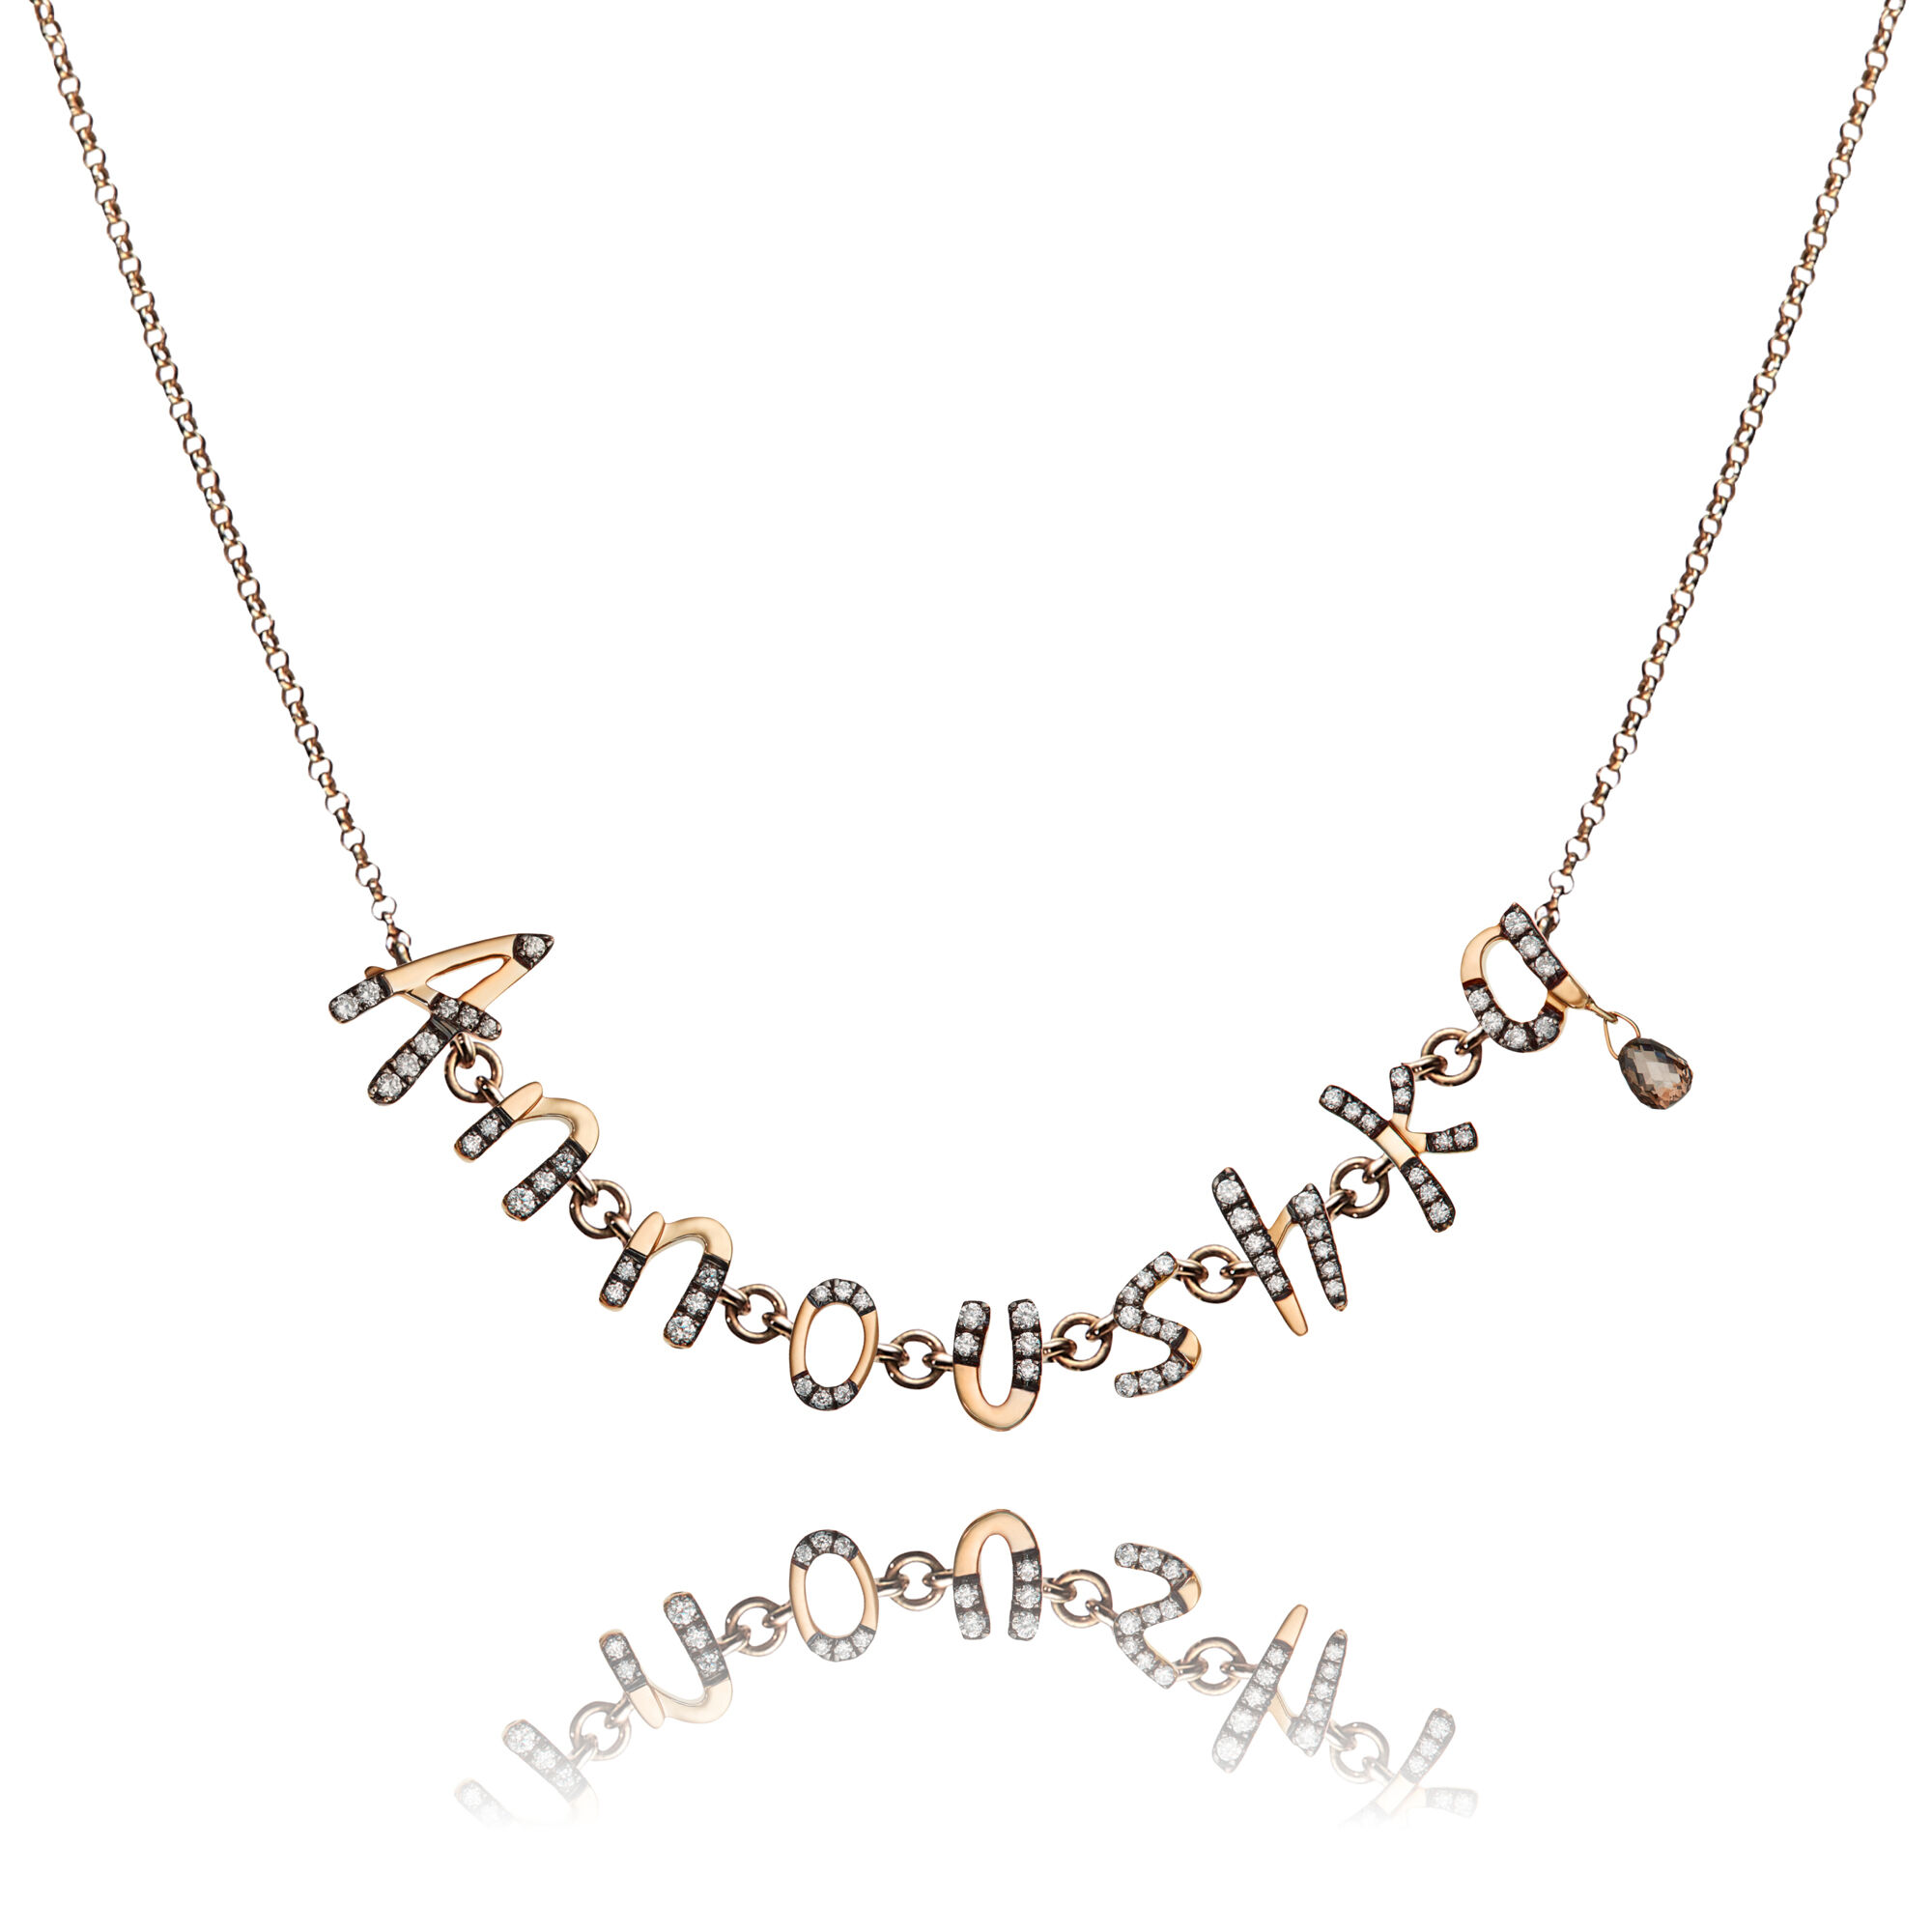 ce95067581d7c Personalised Rose Gold Chain Letters Necklace